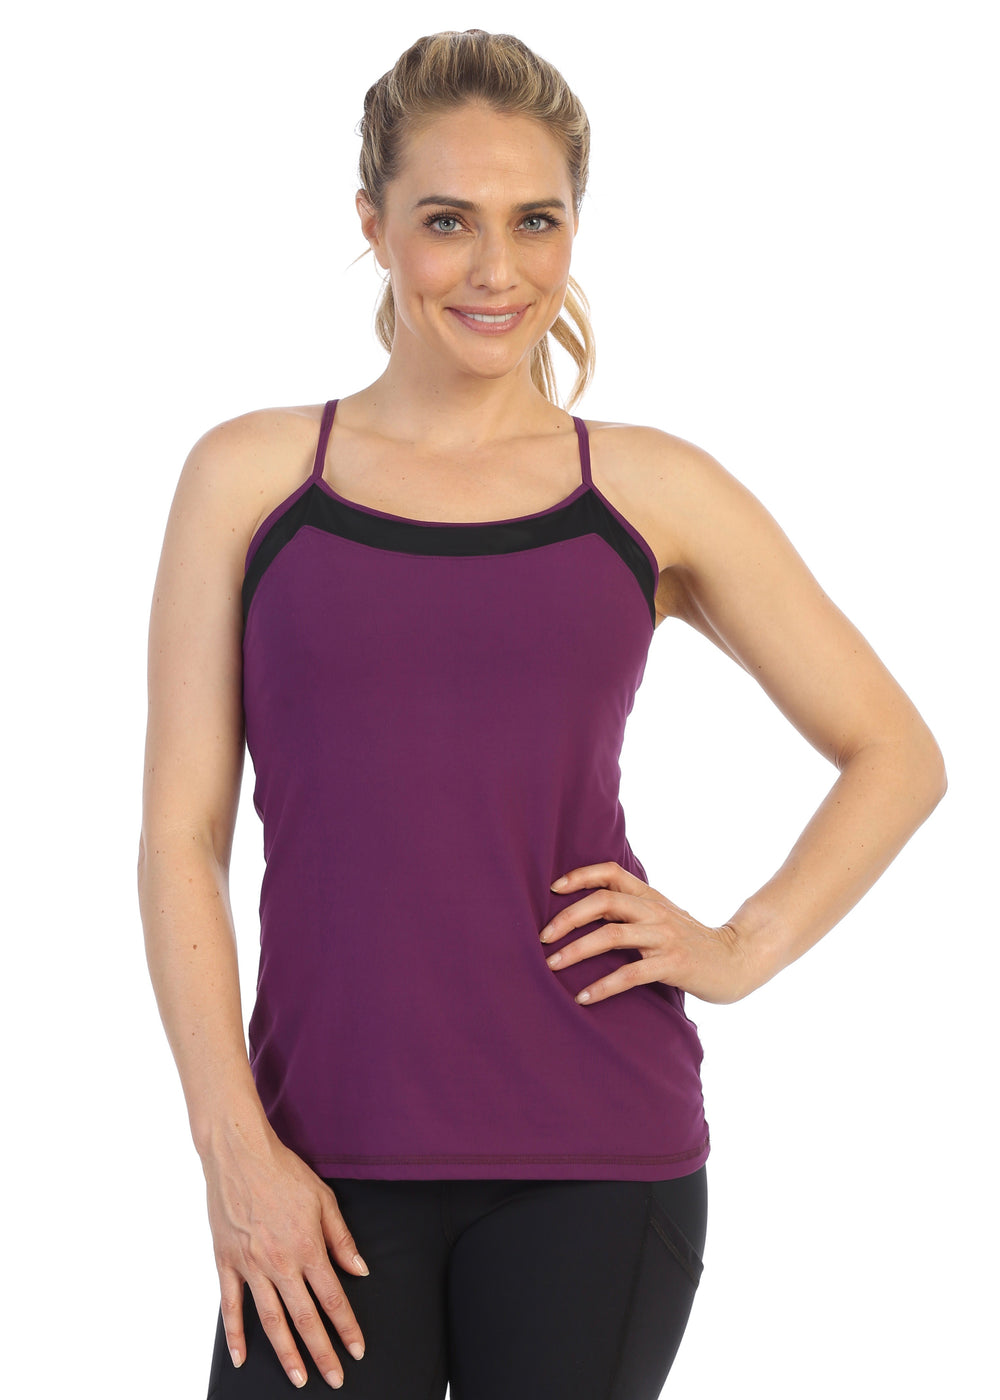 Plum--Racerback Y Built In Bra Workout Top-front image